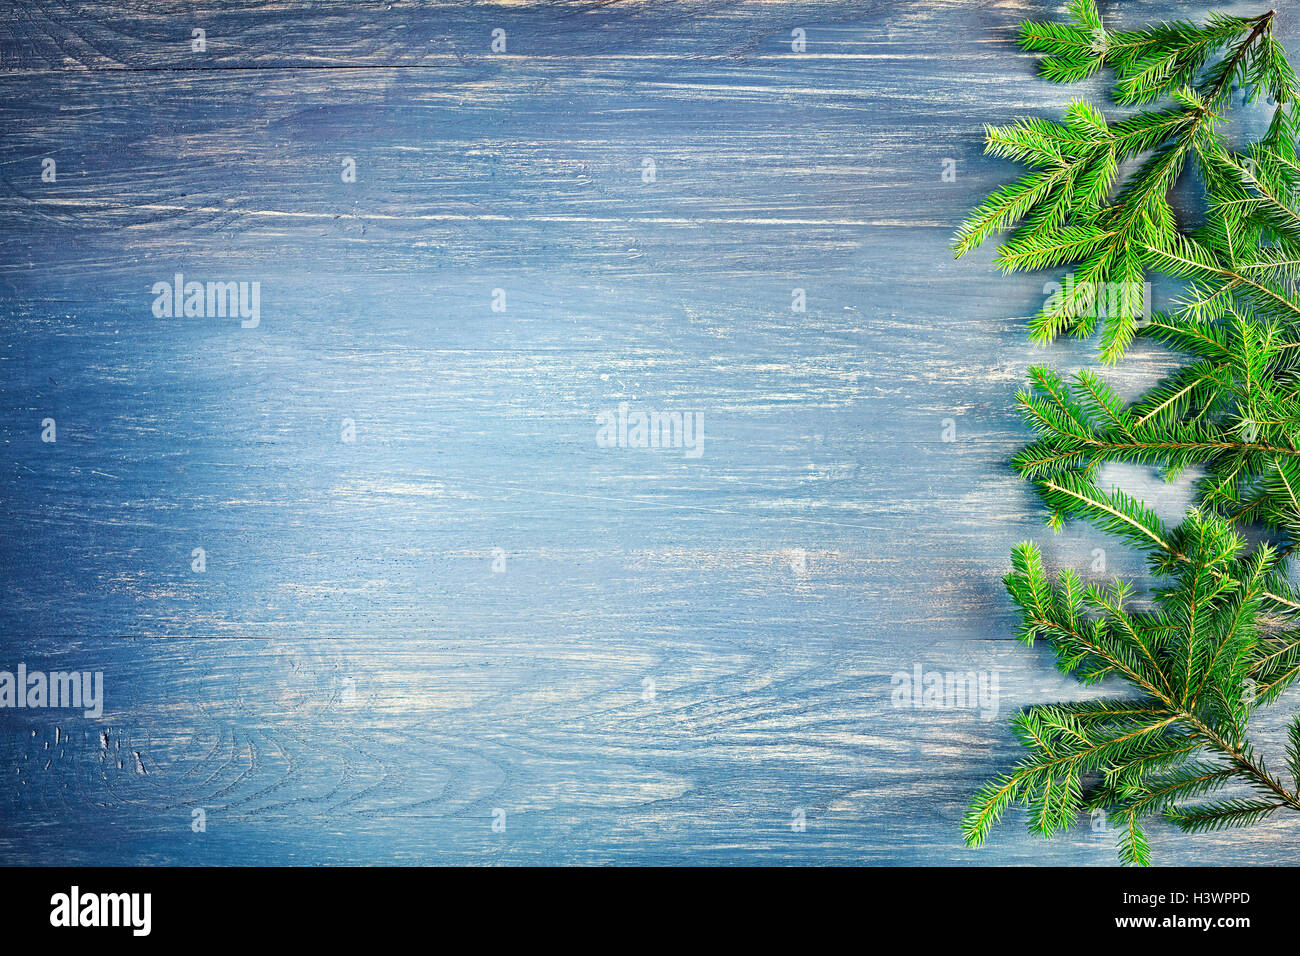 Retro stylized Christmas background with spruce branches on a rustic wooden table, top view with copy space. - Stock Image